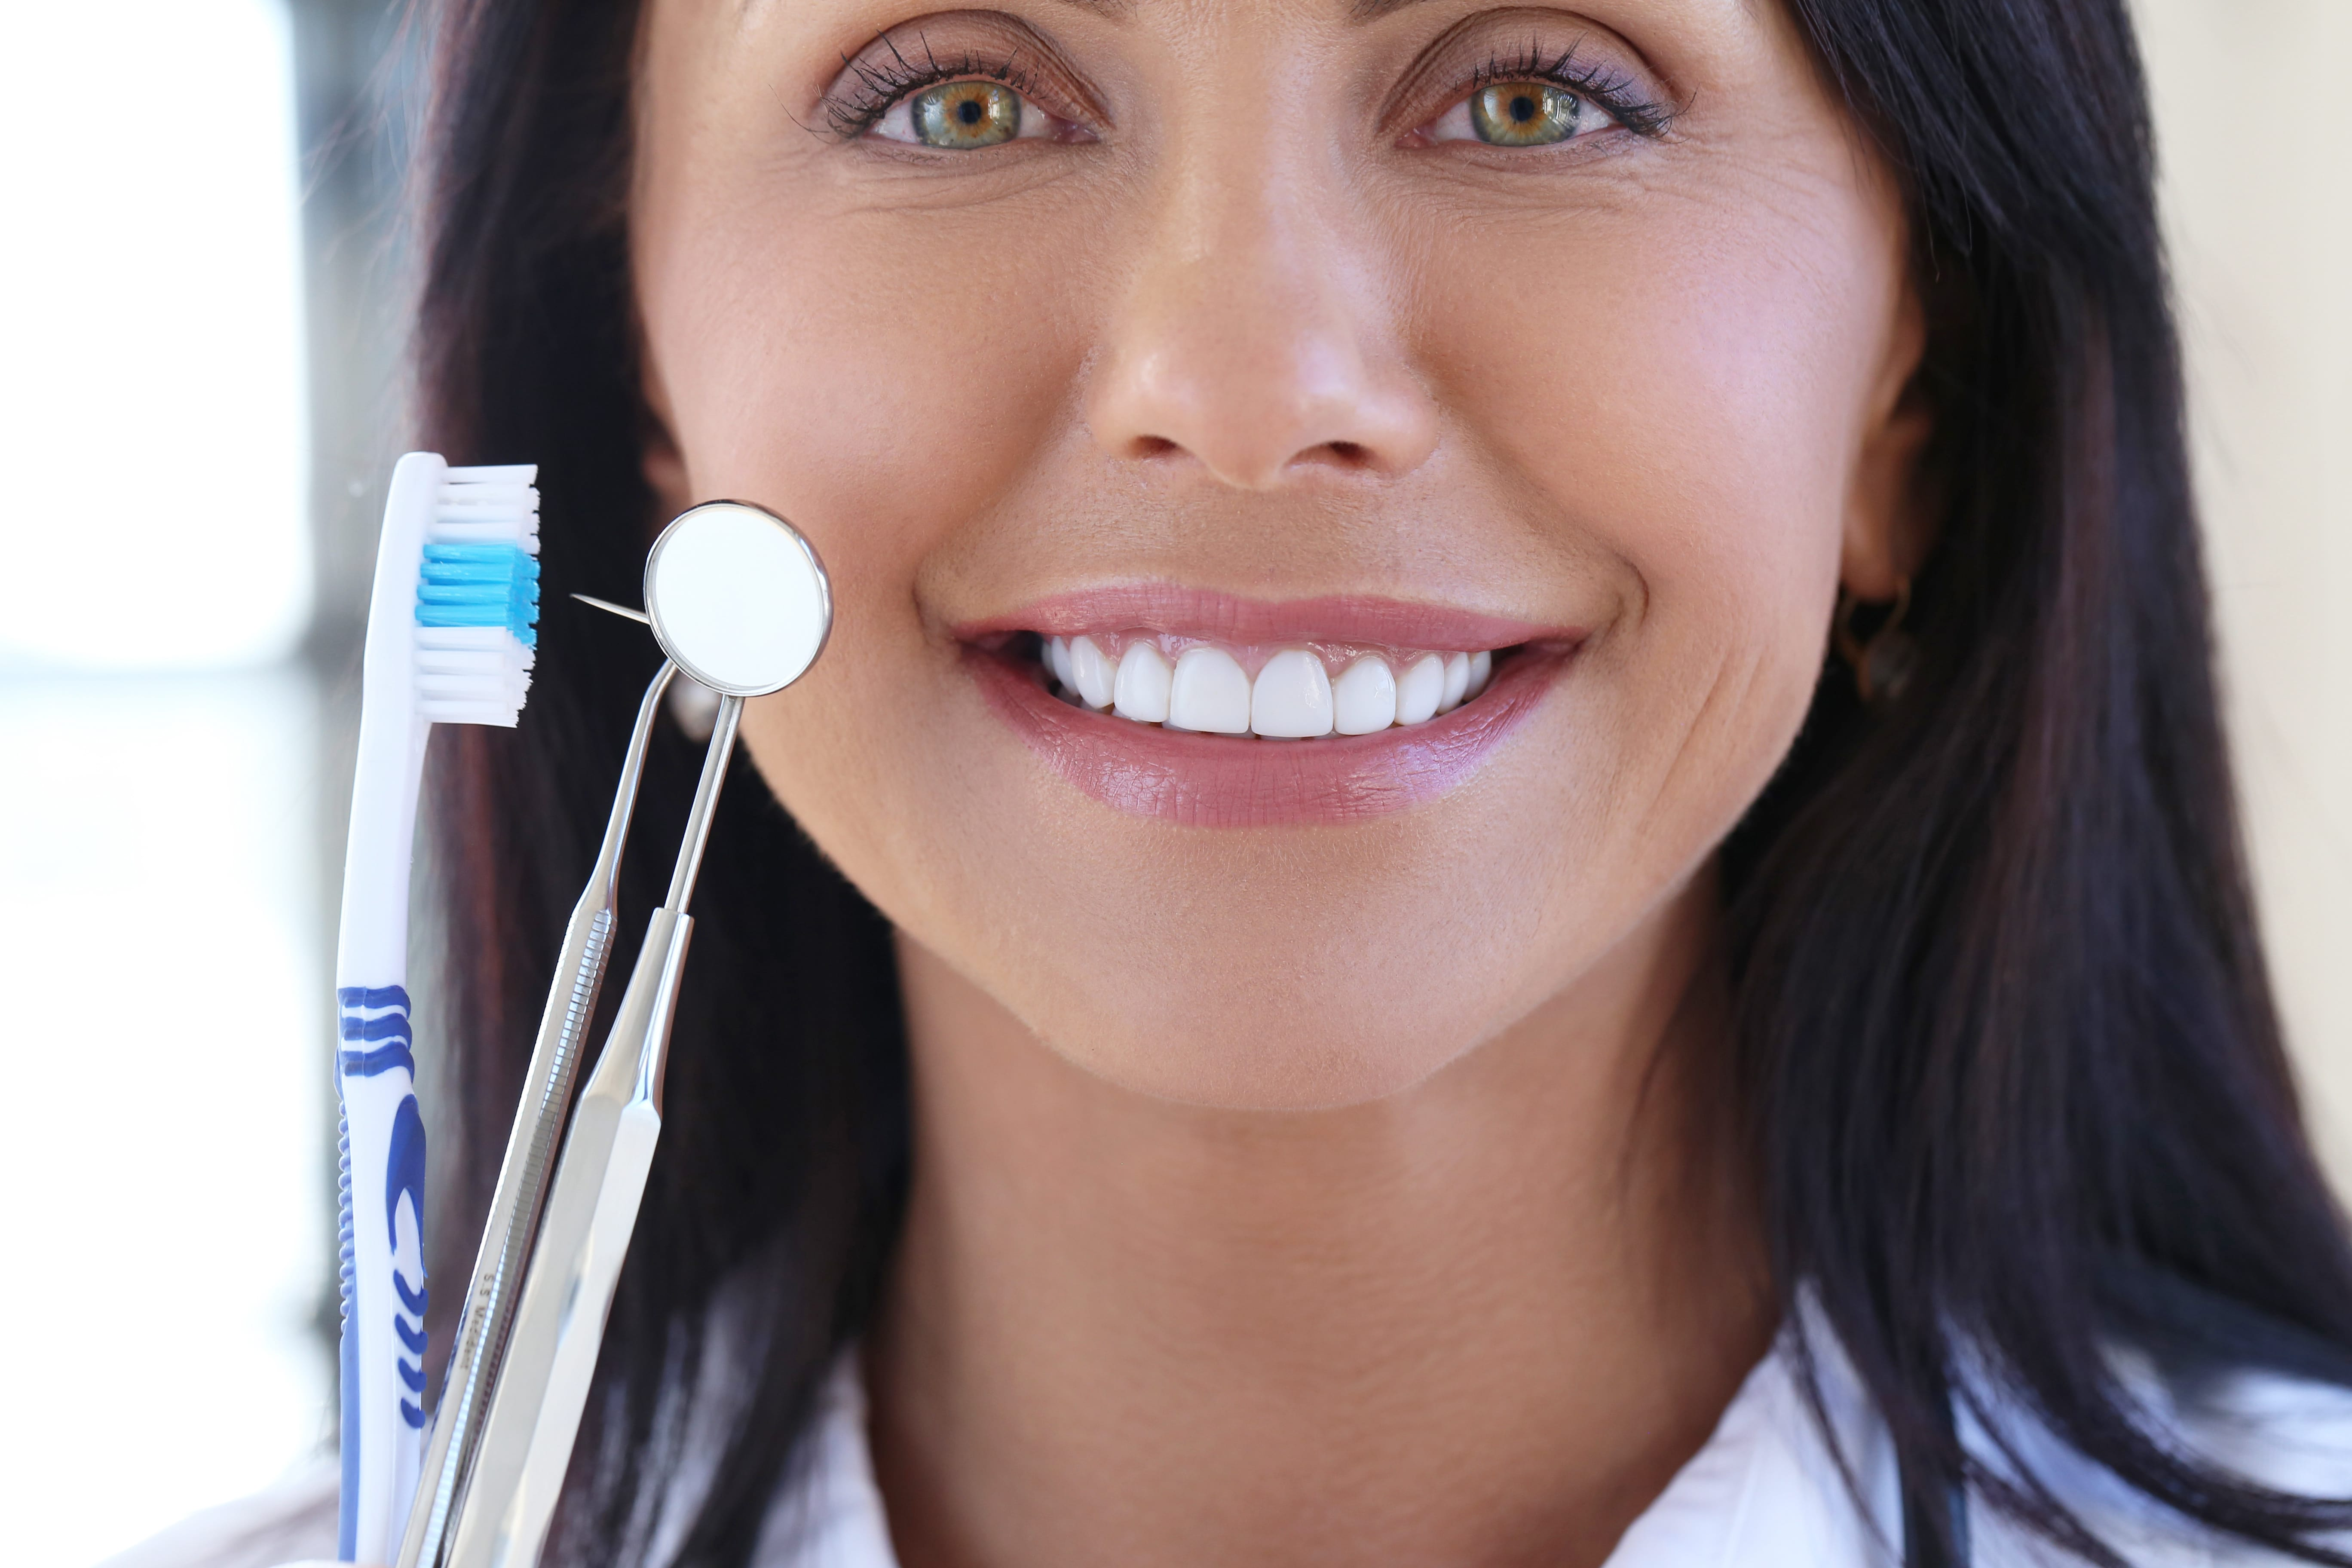 Cambridge dentist: the importance of maintaining oral health